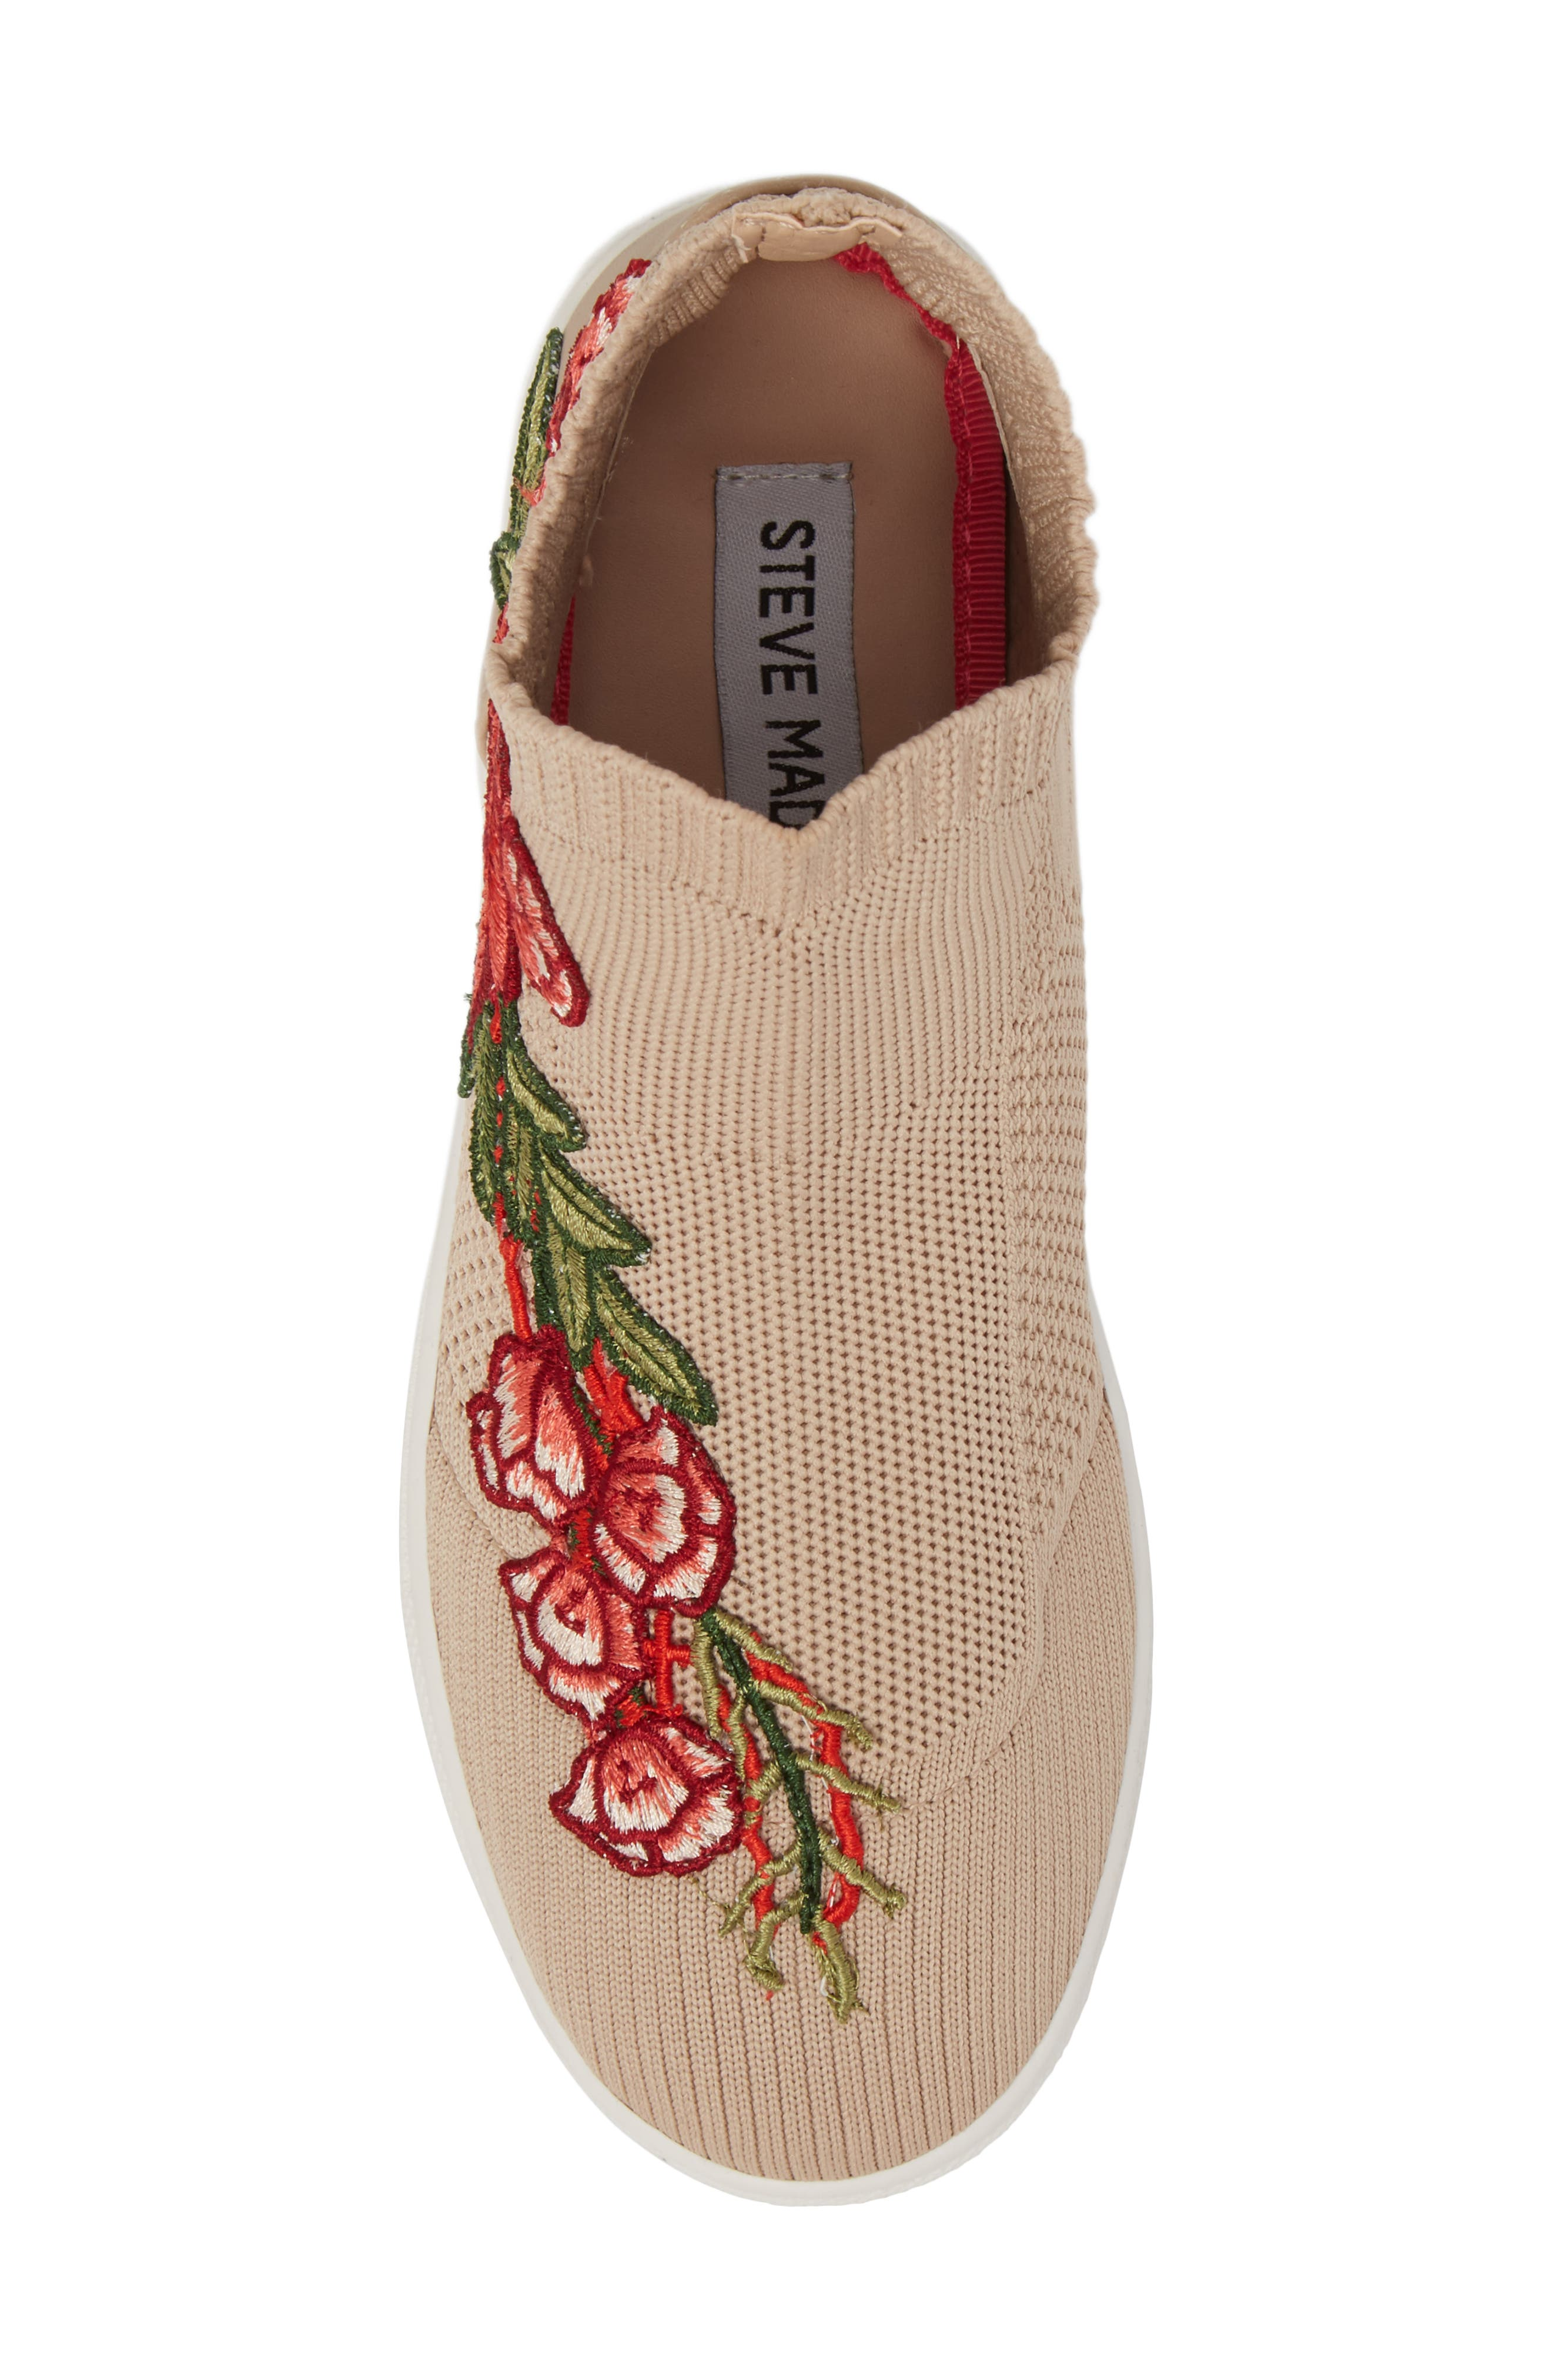 July Embroidered Knit Bootie,                             Alternate thumbnail 5, color,                             Blush